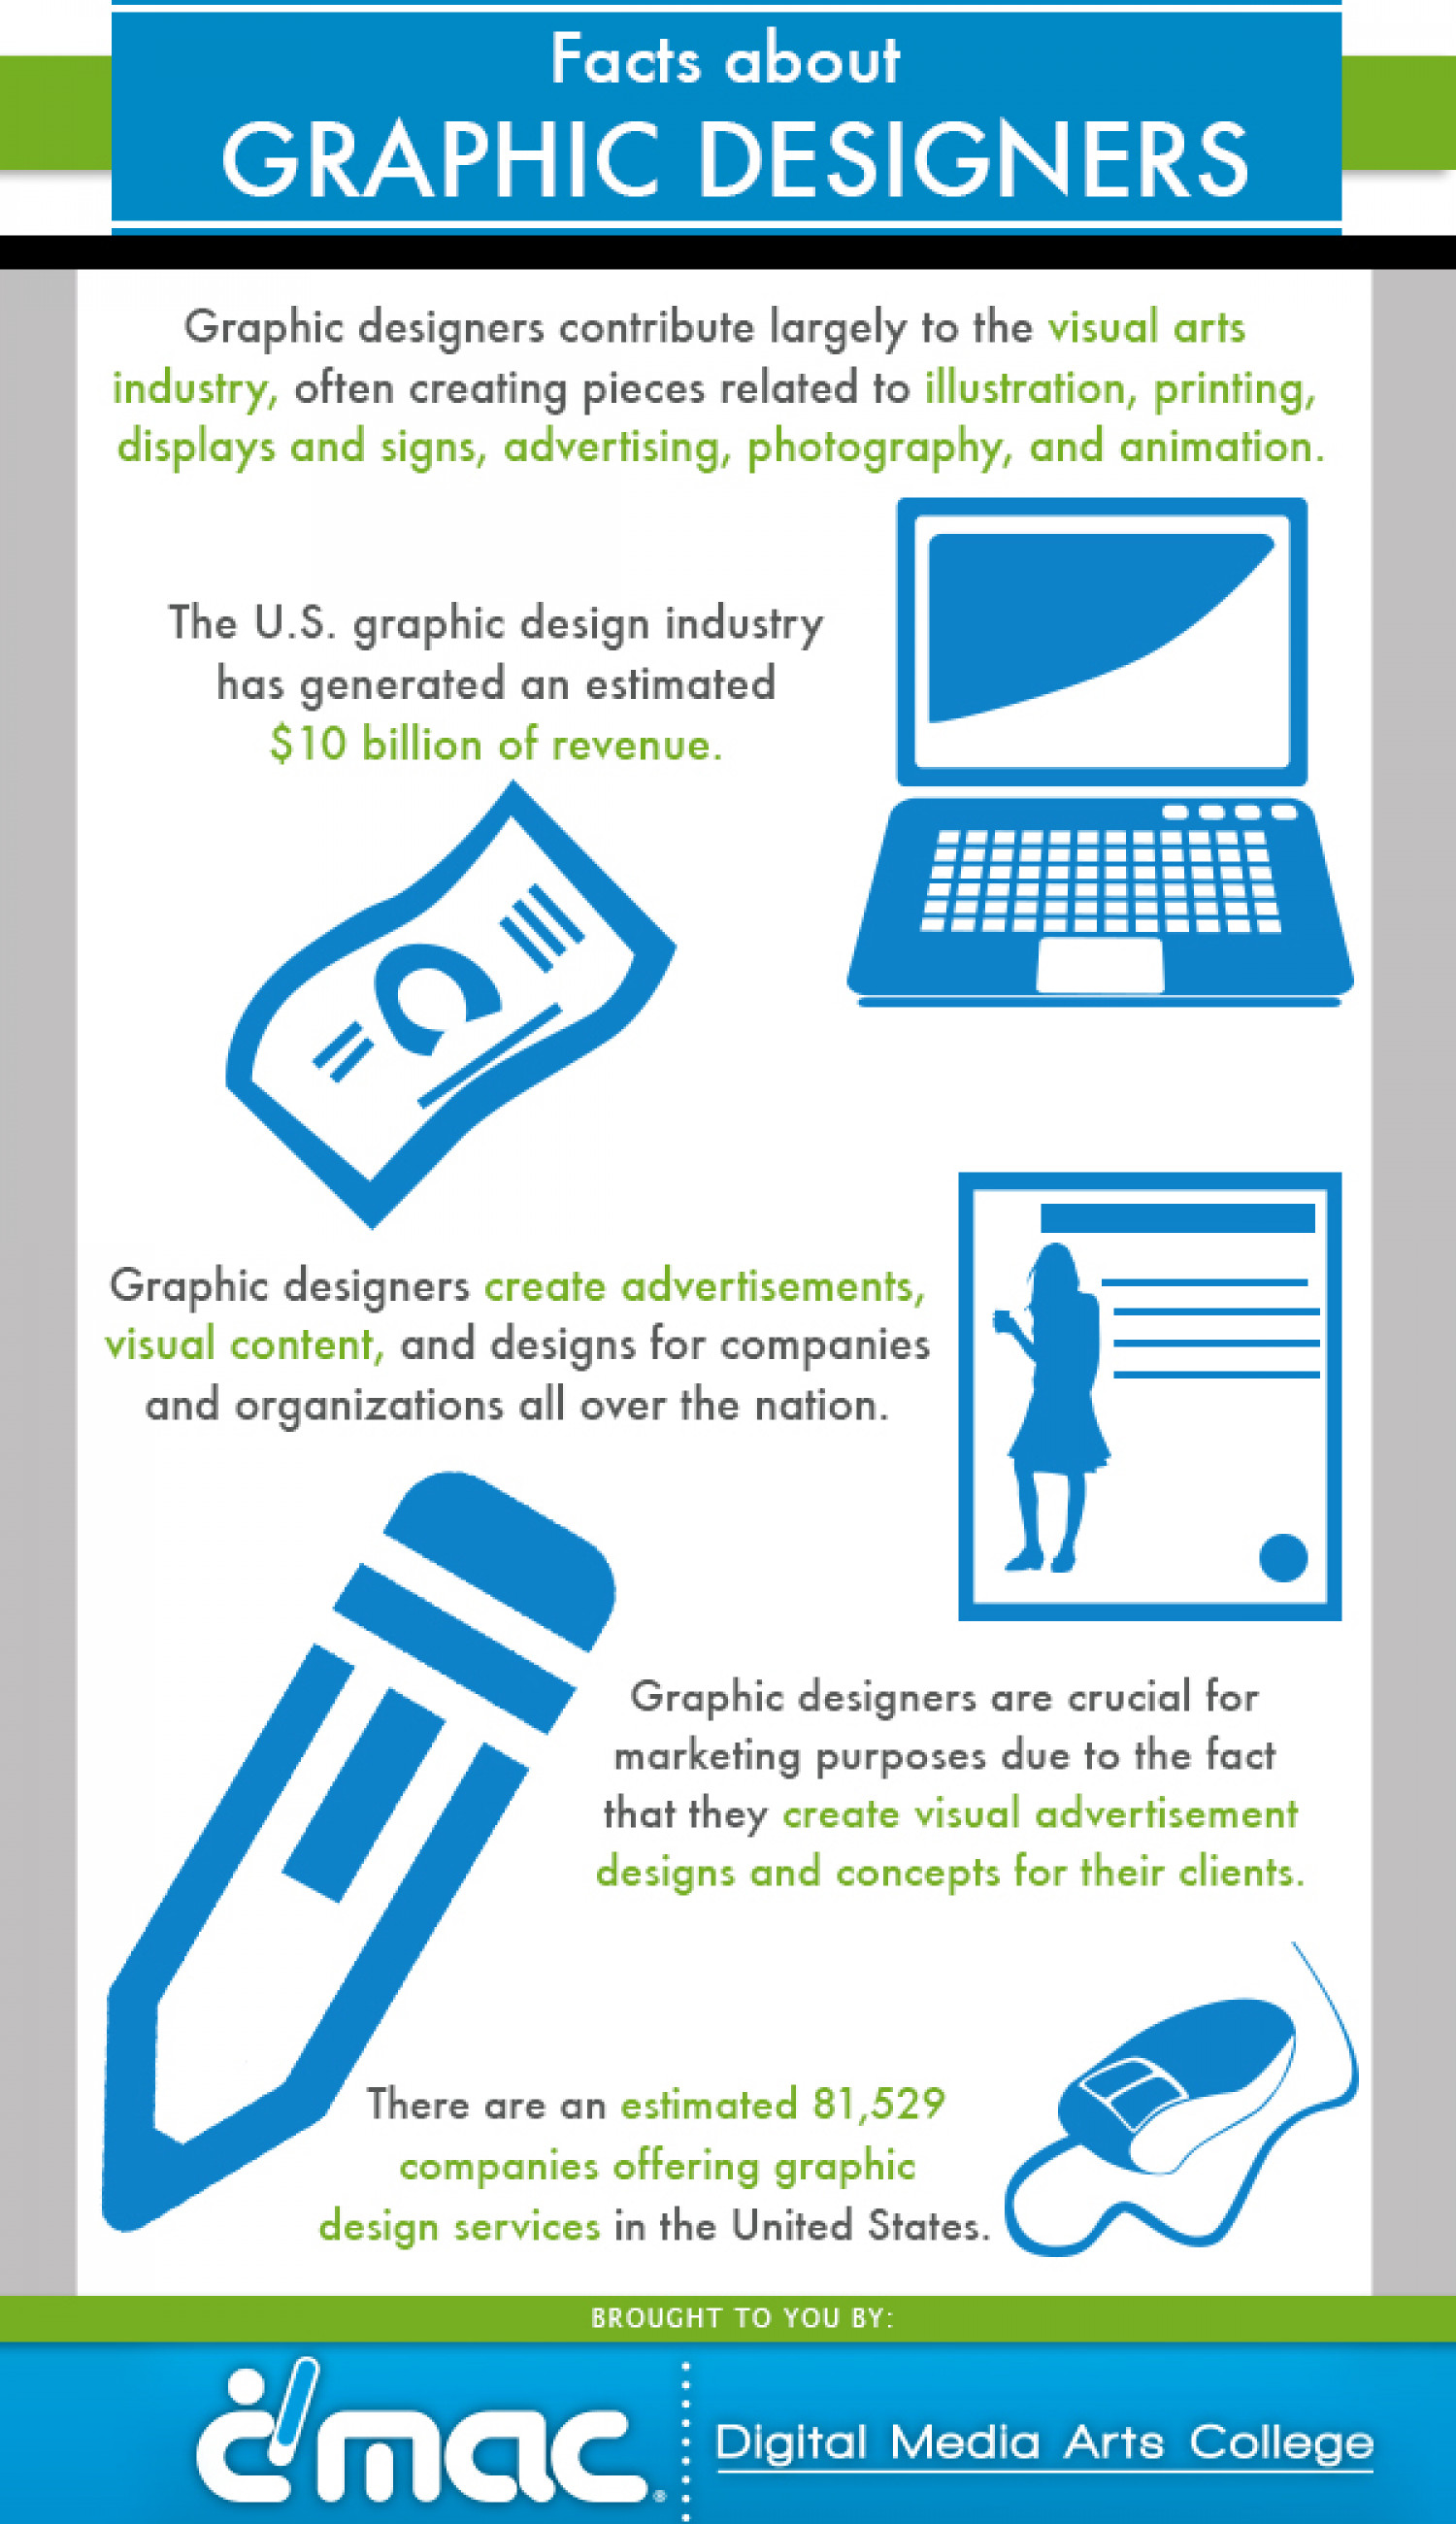 Facts About Graphic Designers Infographic